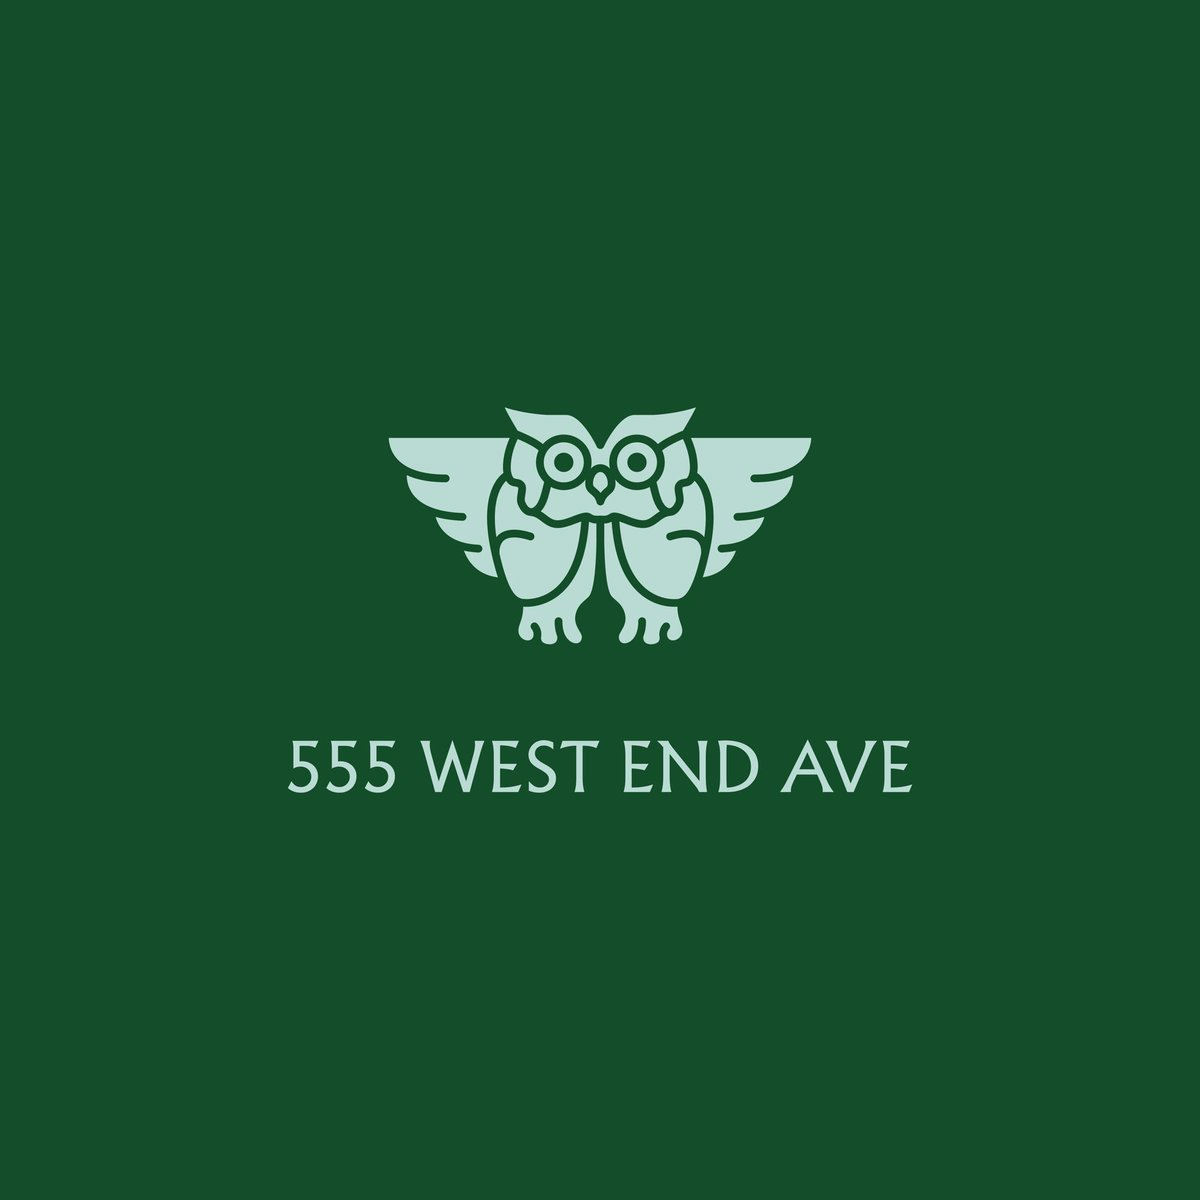 .@LukeHayman & team design the brand identity, marketing campaign & website for 555 West End Avenue, a former private high school on NYs Upper West Side transformed into luxury residences pentagram.com/work/555-west-…